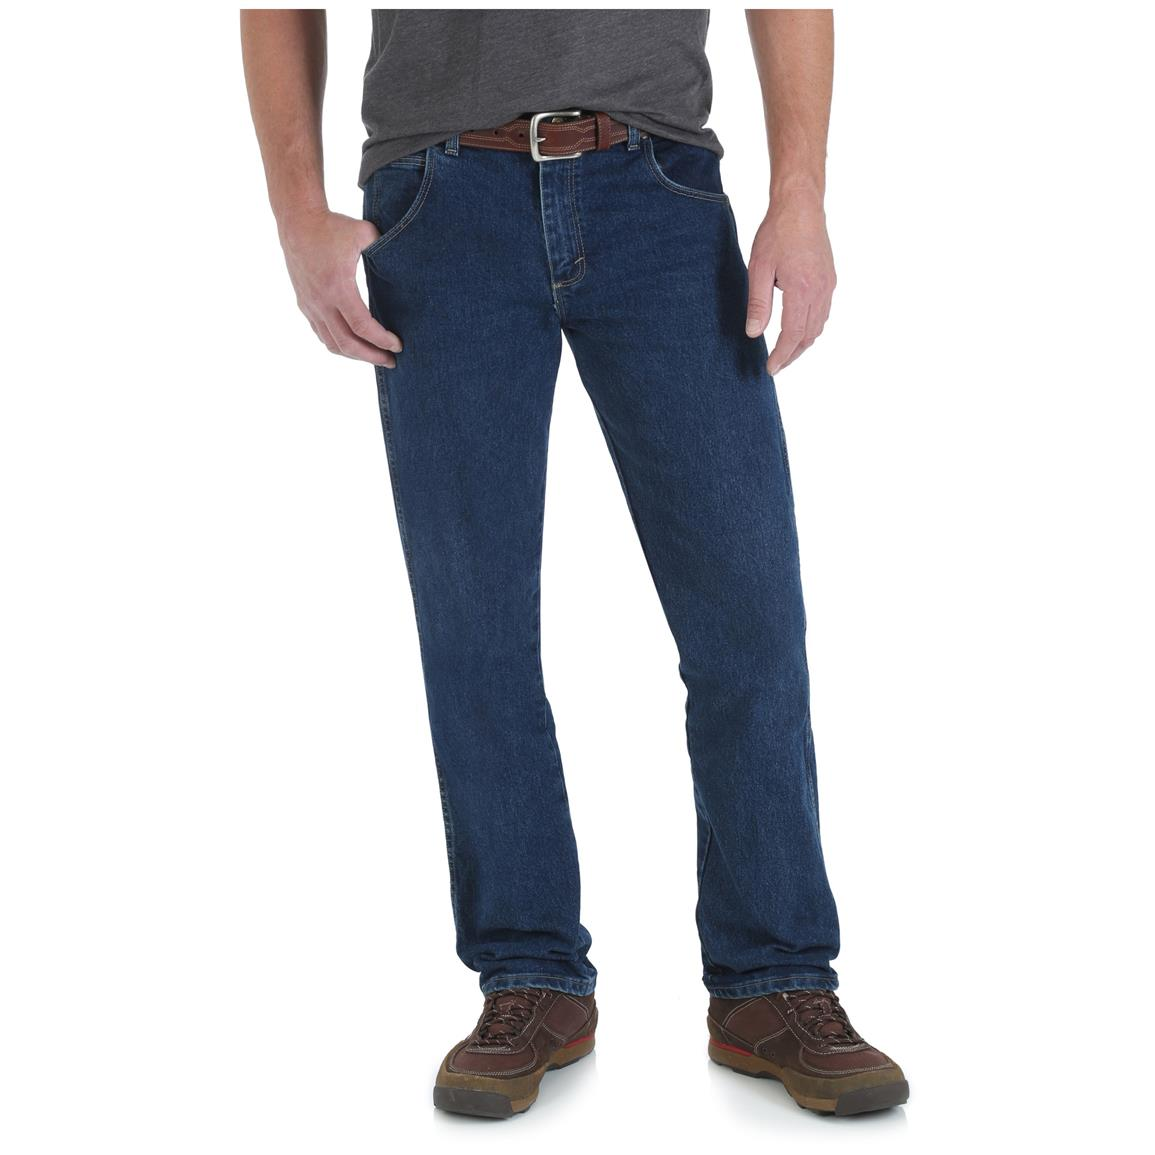 Wrangler Rugged Wear Men's Regular Fit Jean, Dark Stone